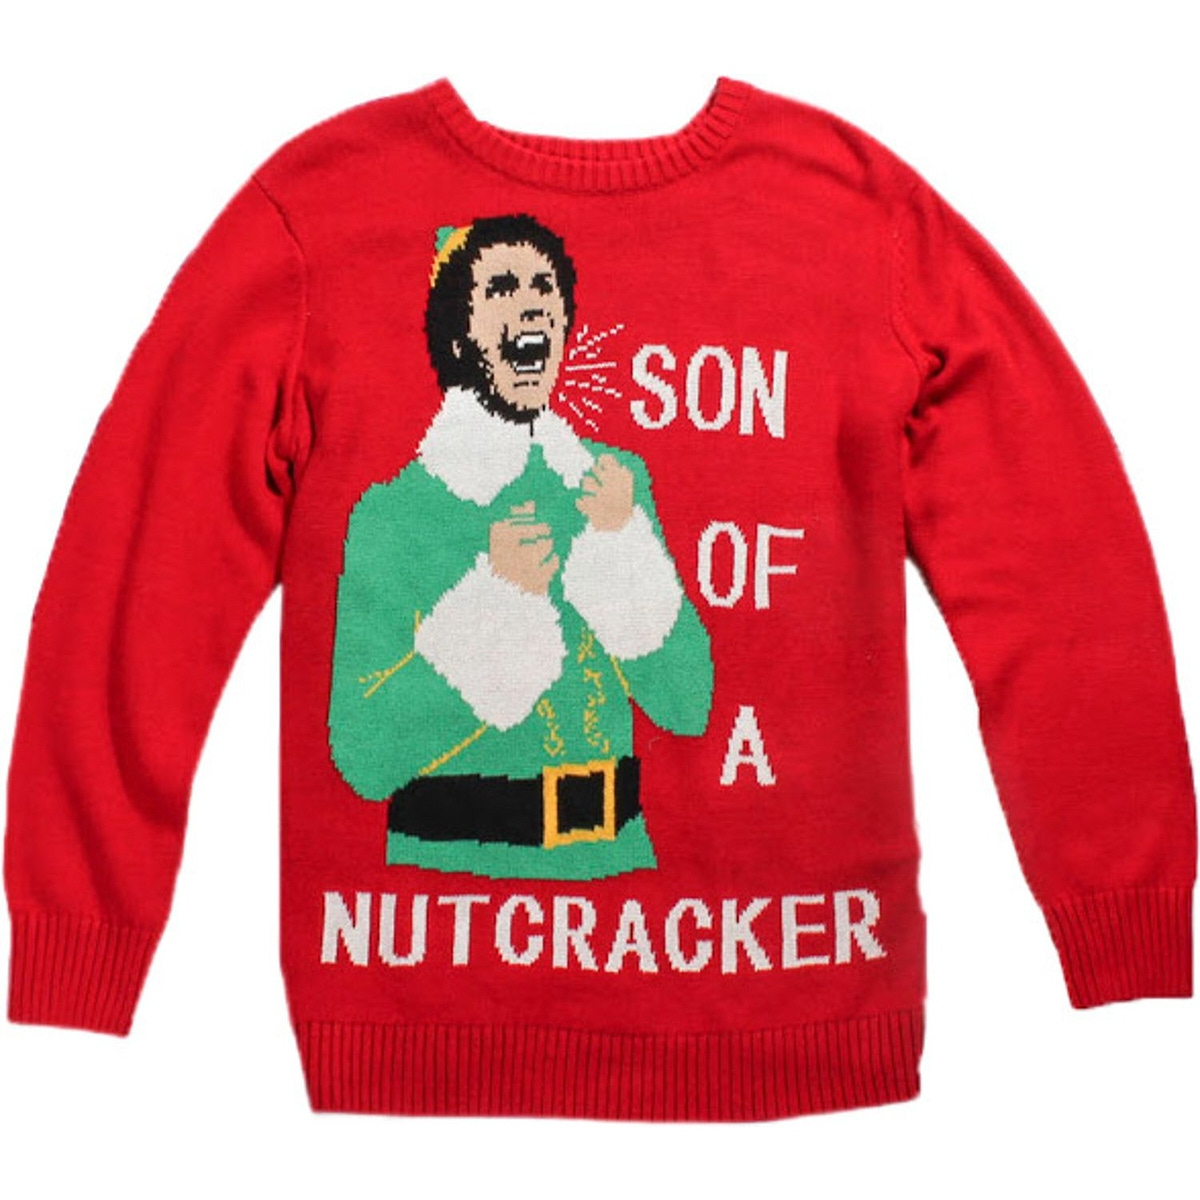 Spencers Ugly Christmas Sweaters.Son Of A Nutcracker Elf Ugly Christmas Sweater